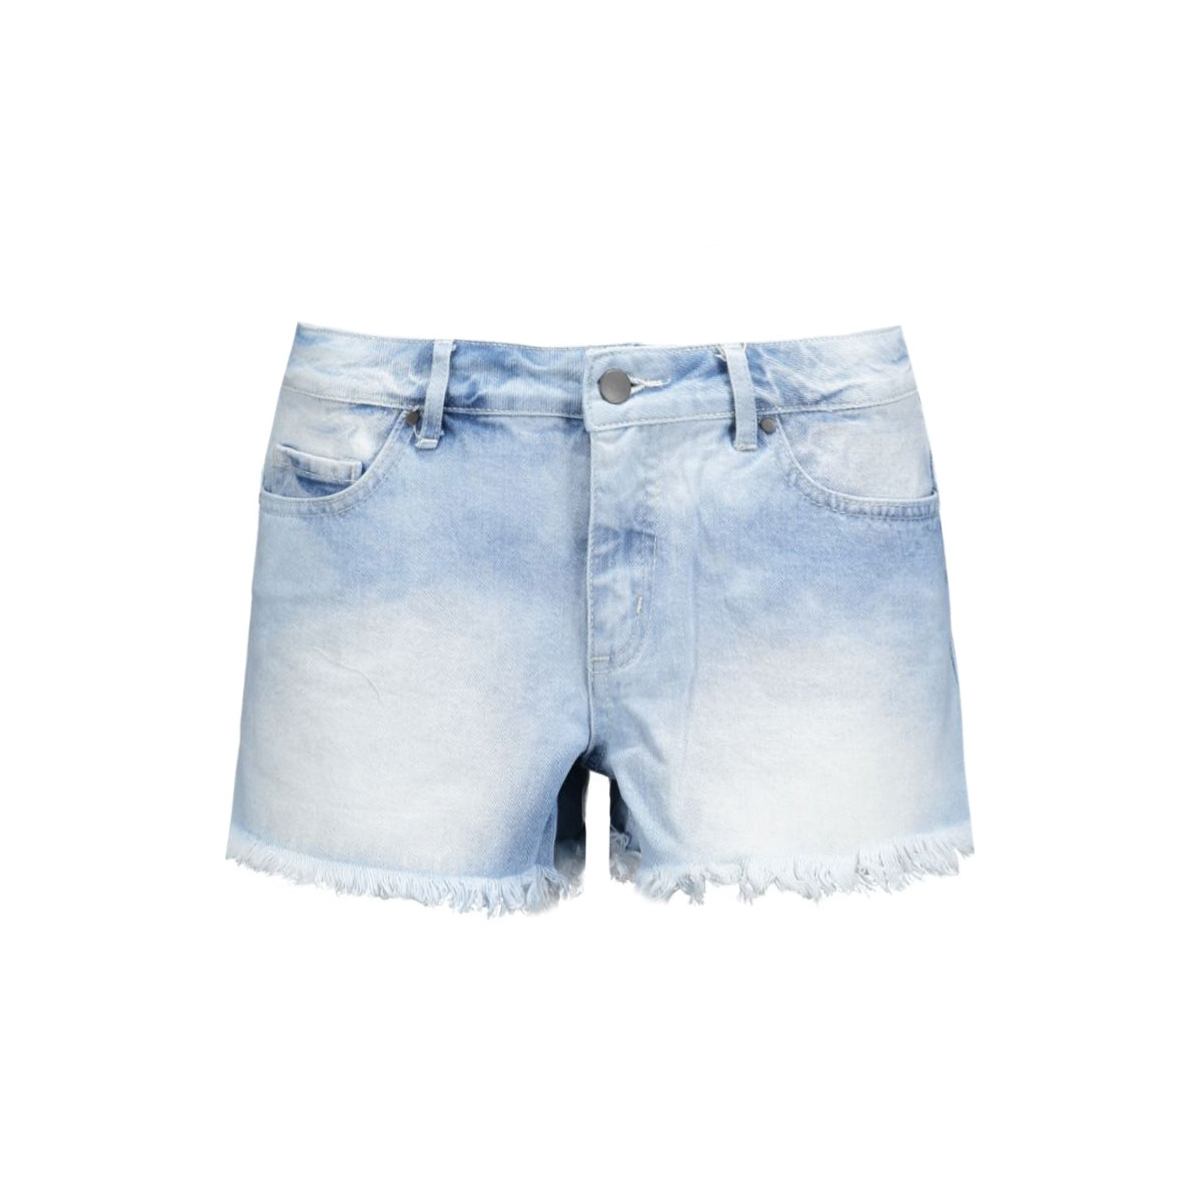 pcjust tiffany rlw shorts/lbld noos 17071617 pieces korte broek light blue denim